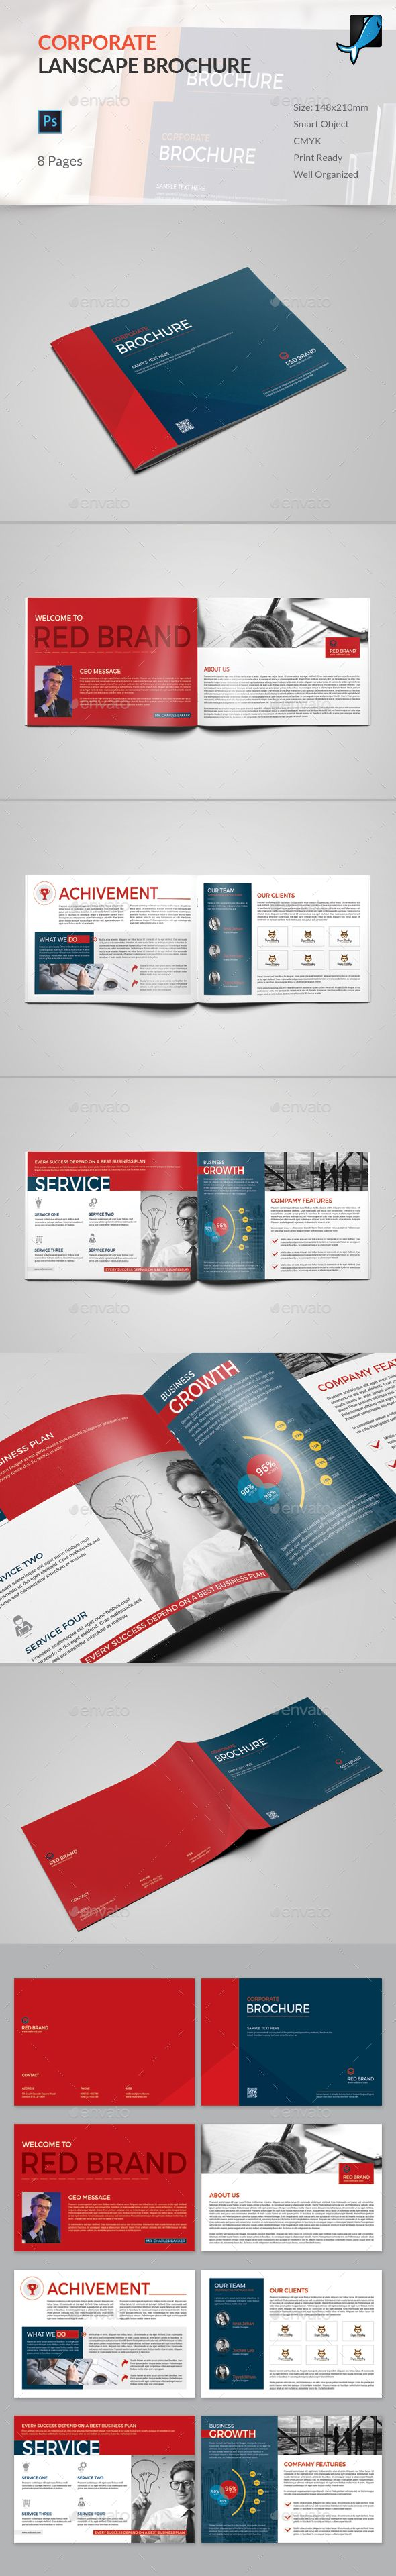 8 Pages Landscape Corporate Brochure Template PSD. Download here: http://graphicriver.net/item/8-pages-landscape-corporate-brochure/16775933?ref=ksioks